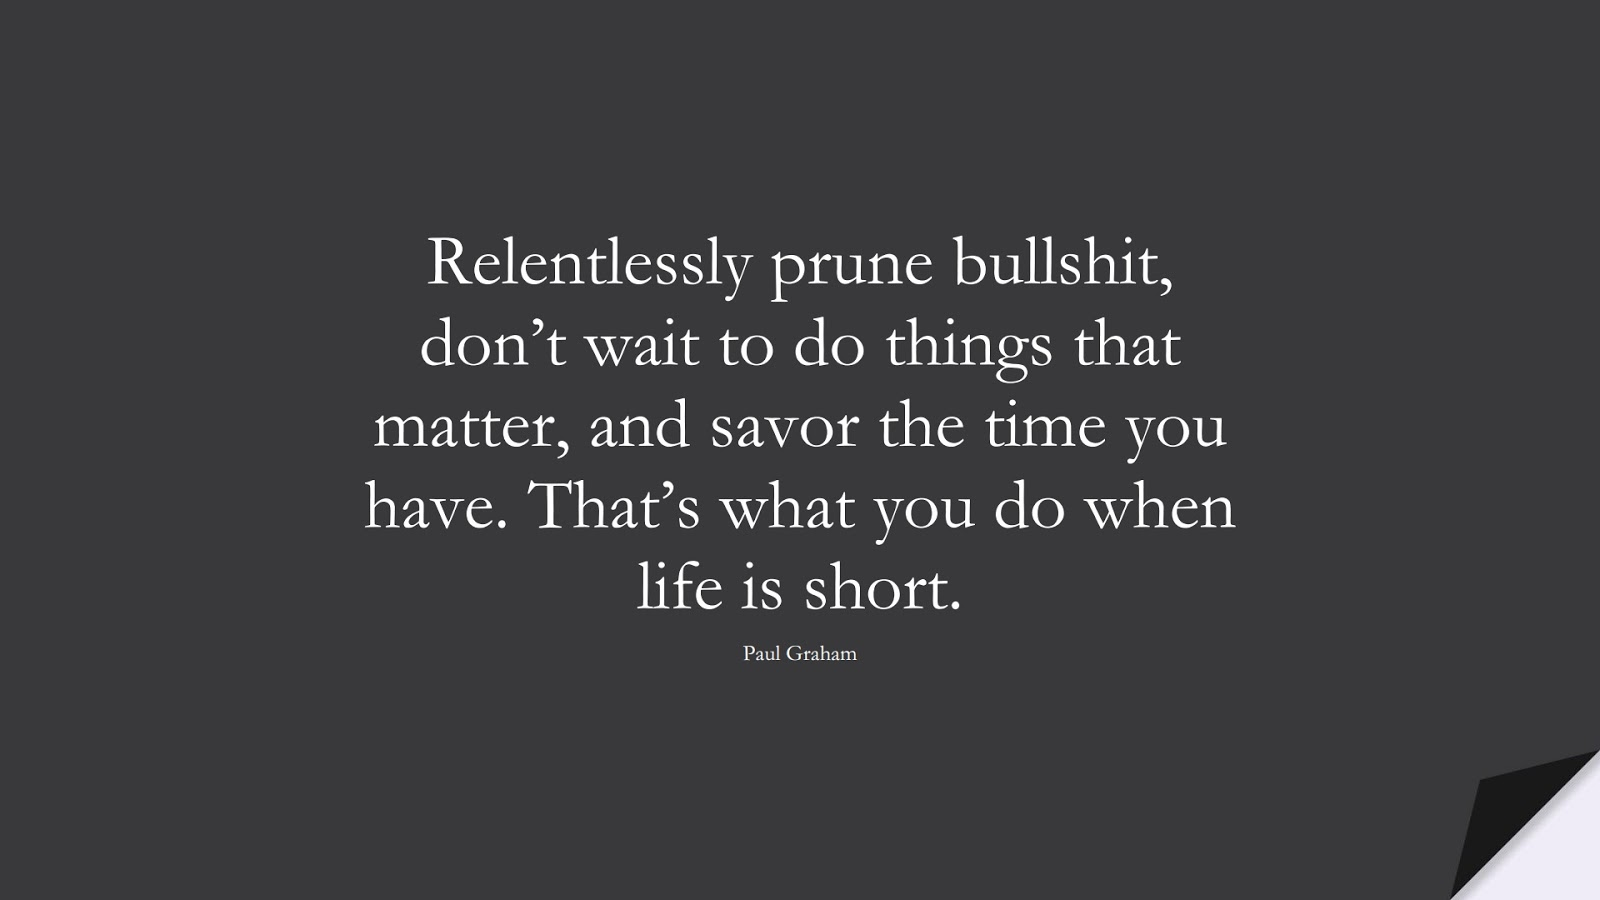 Relentlessly prune bullshit, don't wait to do things that matter, and savor the time you have. That's what you do when life is short. (Paul Graham);  #LifeQuotes